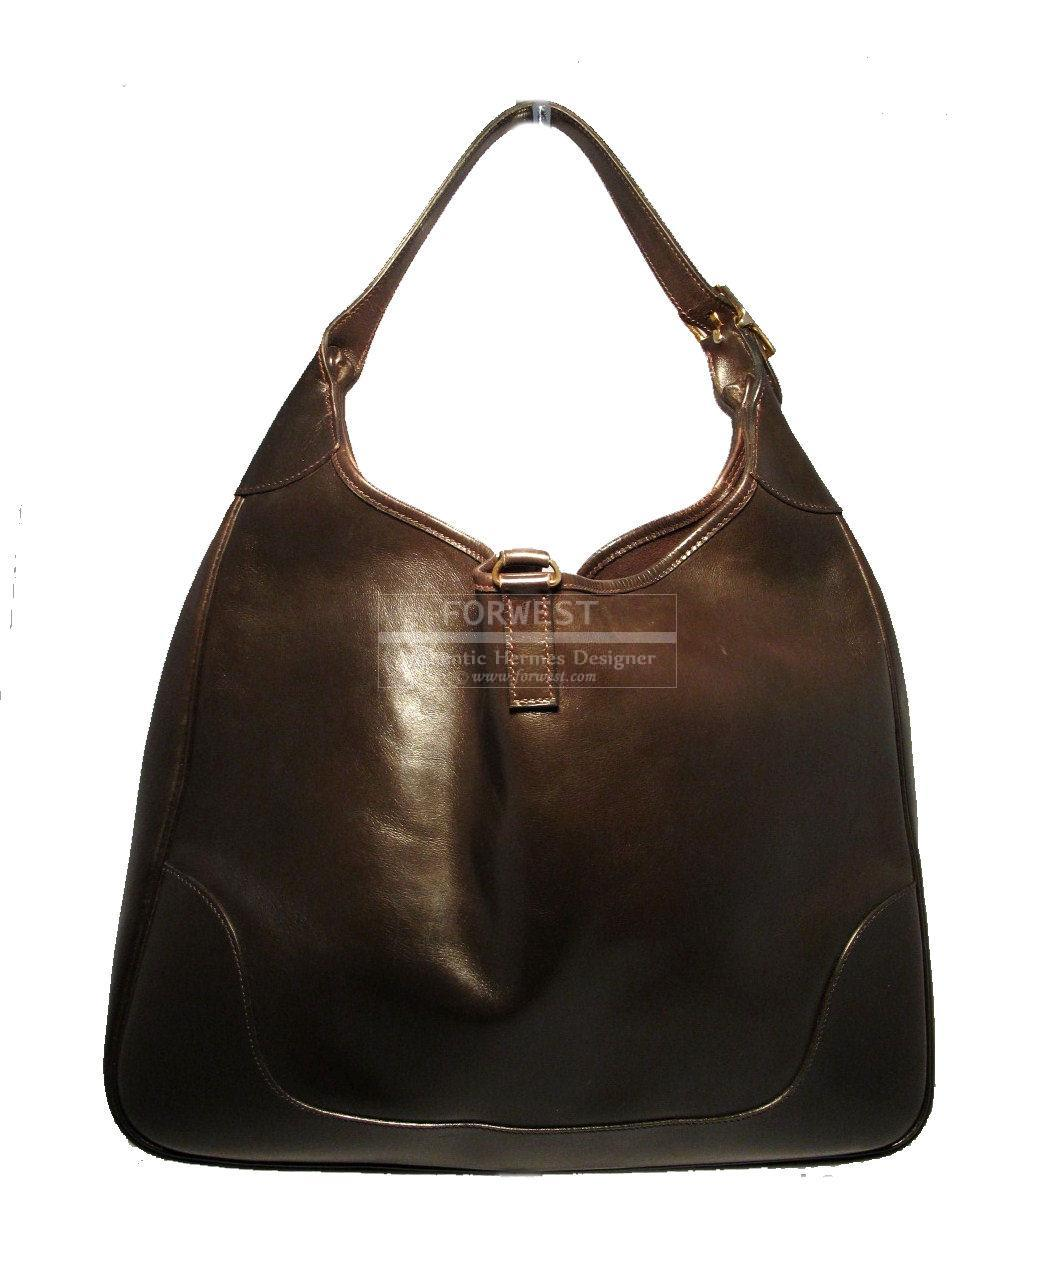 Shop for brown leather handbags and purses at eBags - experts in bags and accessories since We offer easy returns, expert advice, and millions of customer reviews.